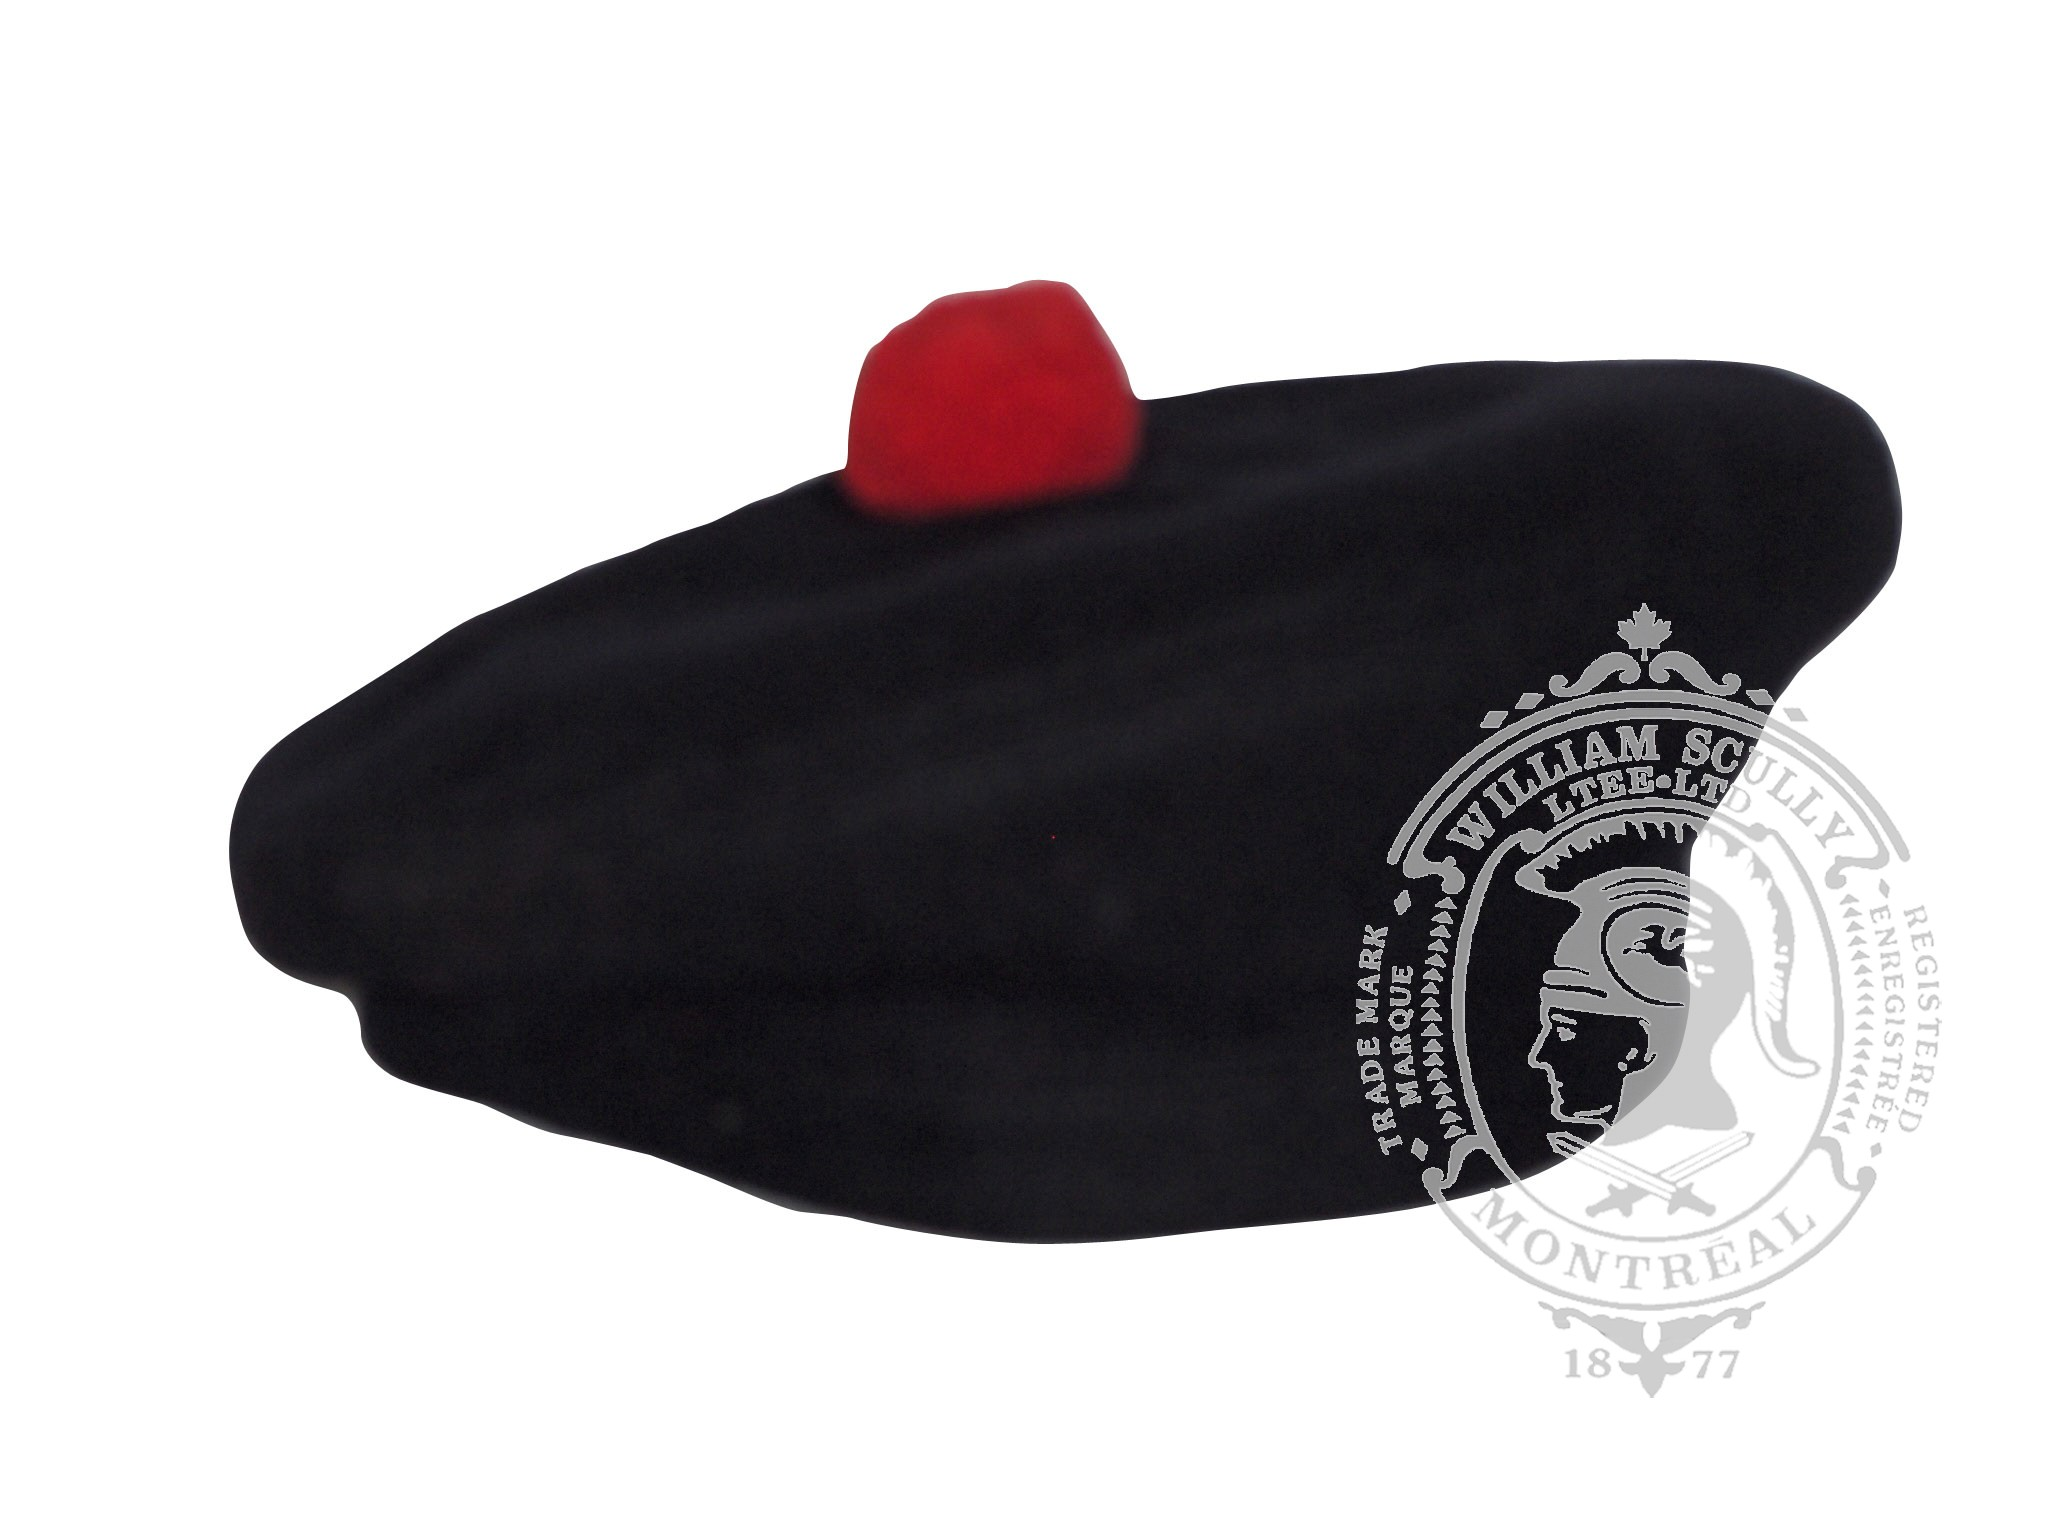 Beret Balmoral with red torrie (Black Watch)